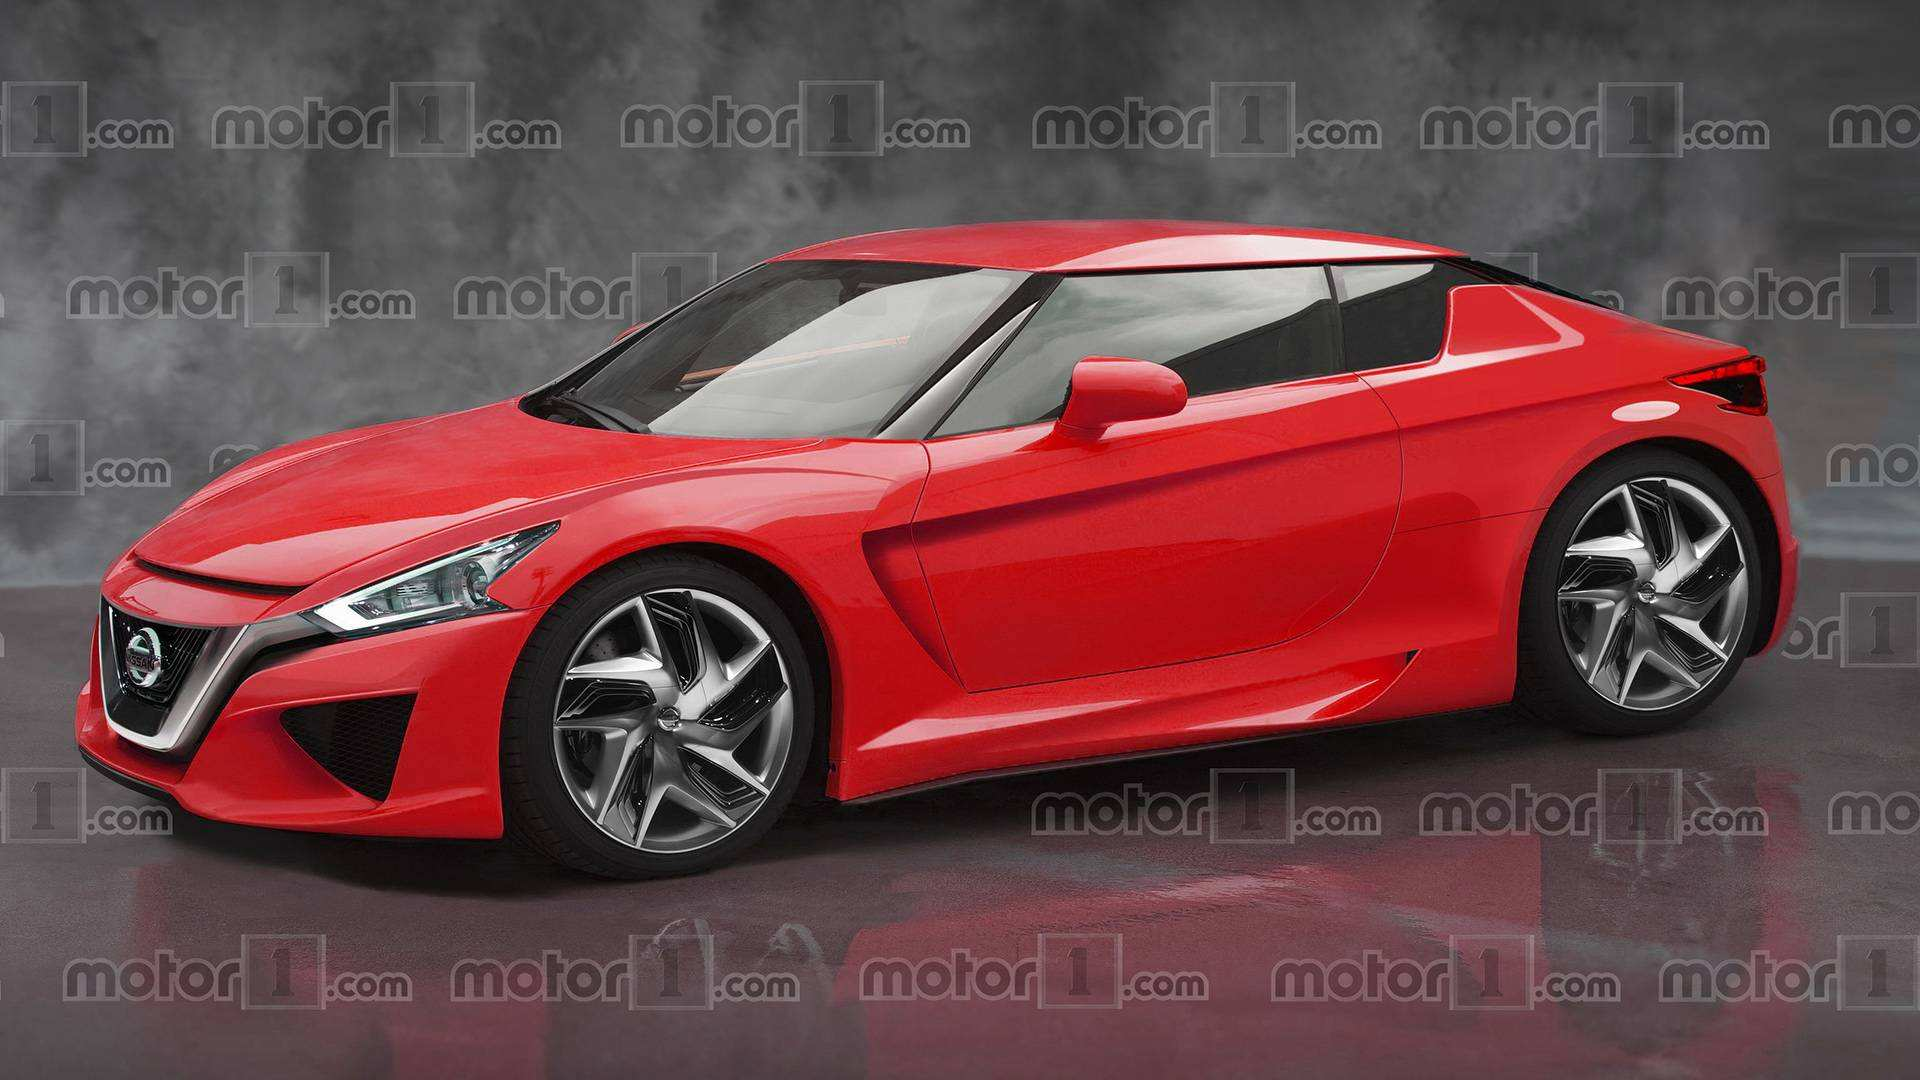 77 All New Nissan Z Car 2020 Prices by Nissan Z Car 2020